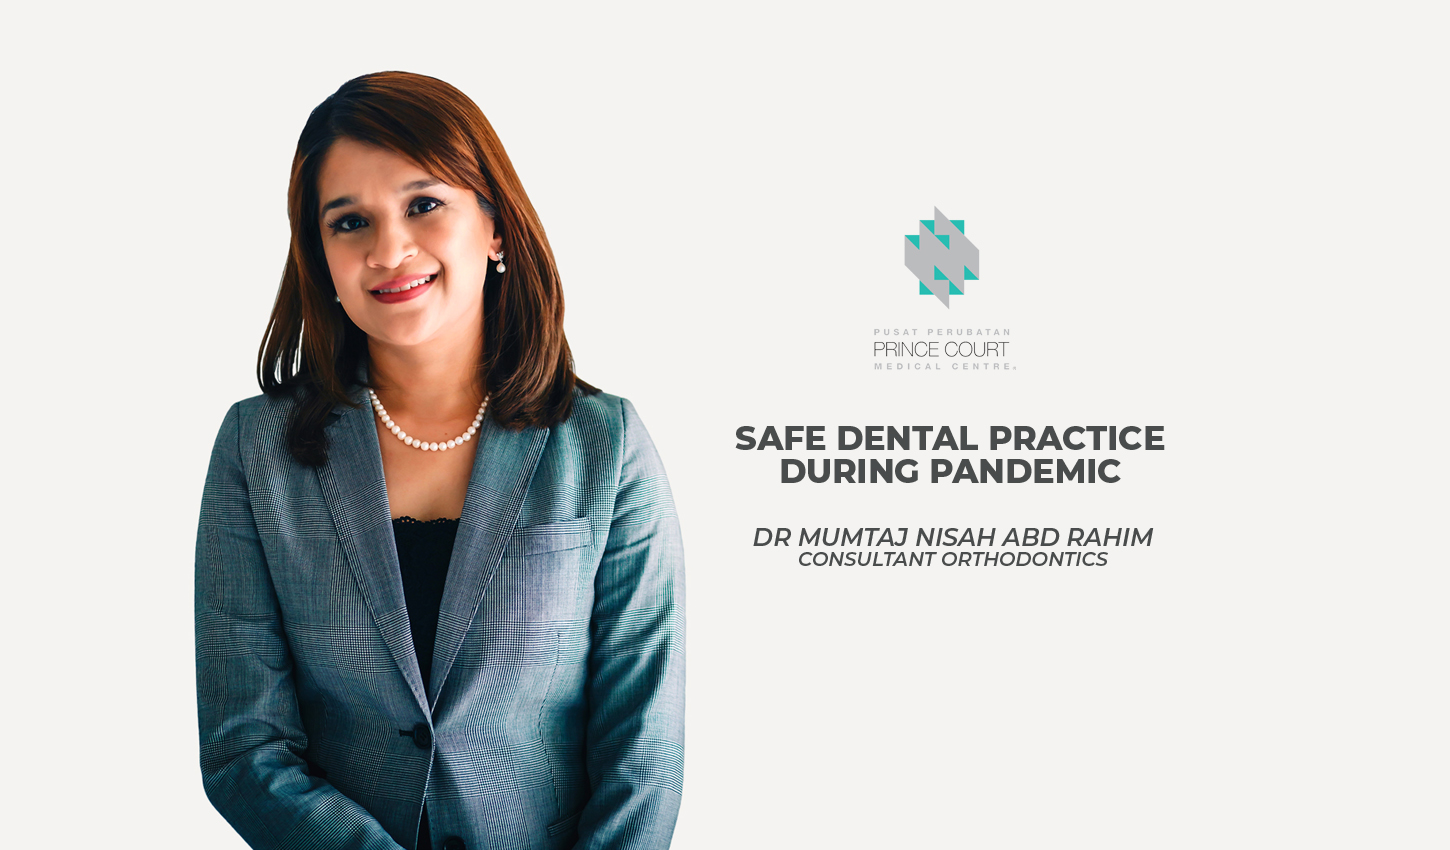 Safe Dental Practice During Covid-19 Pandemic